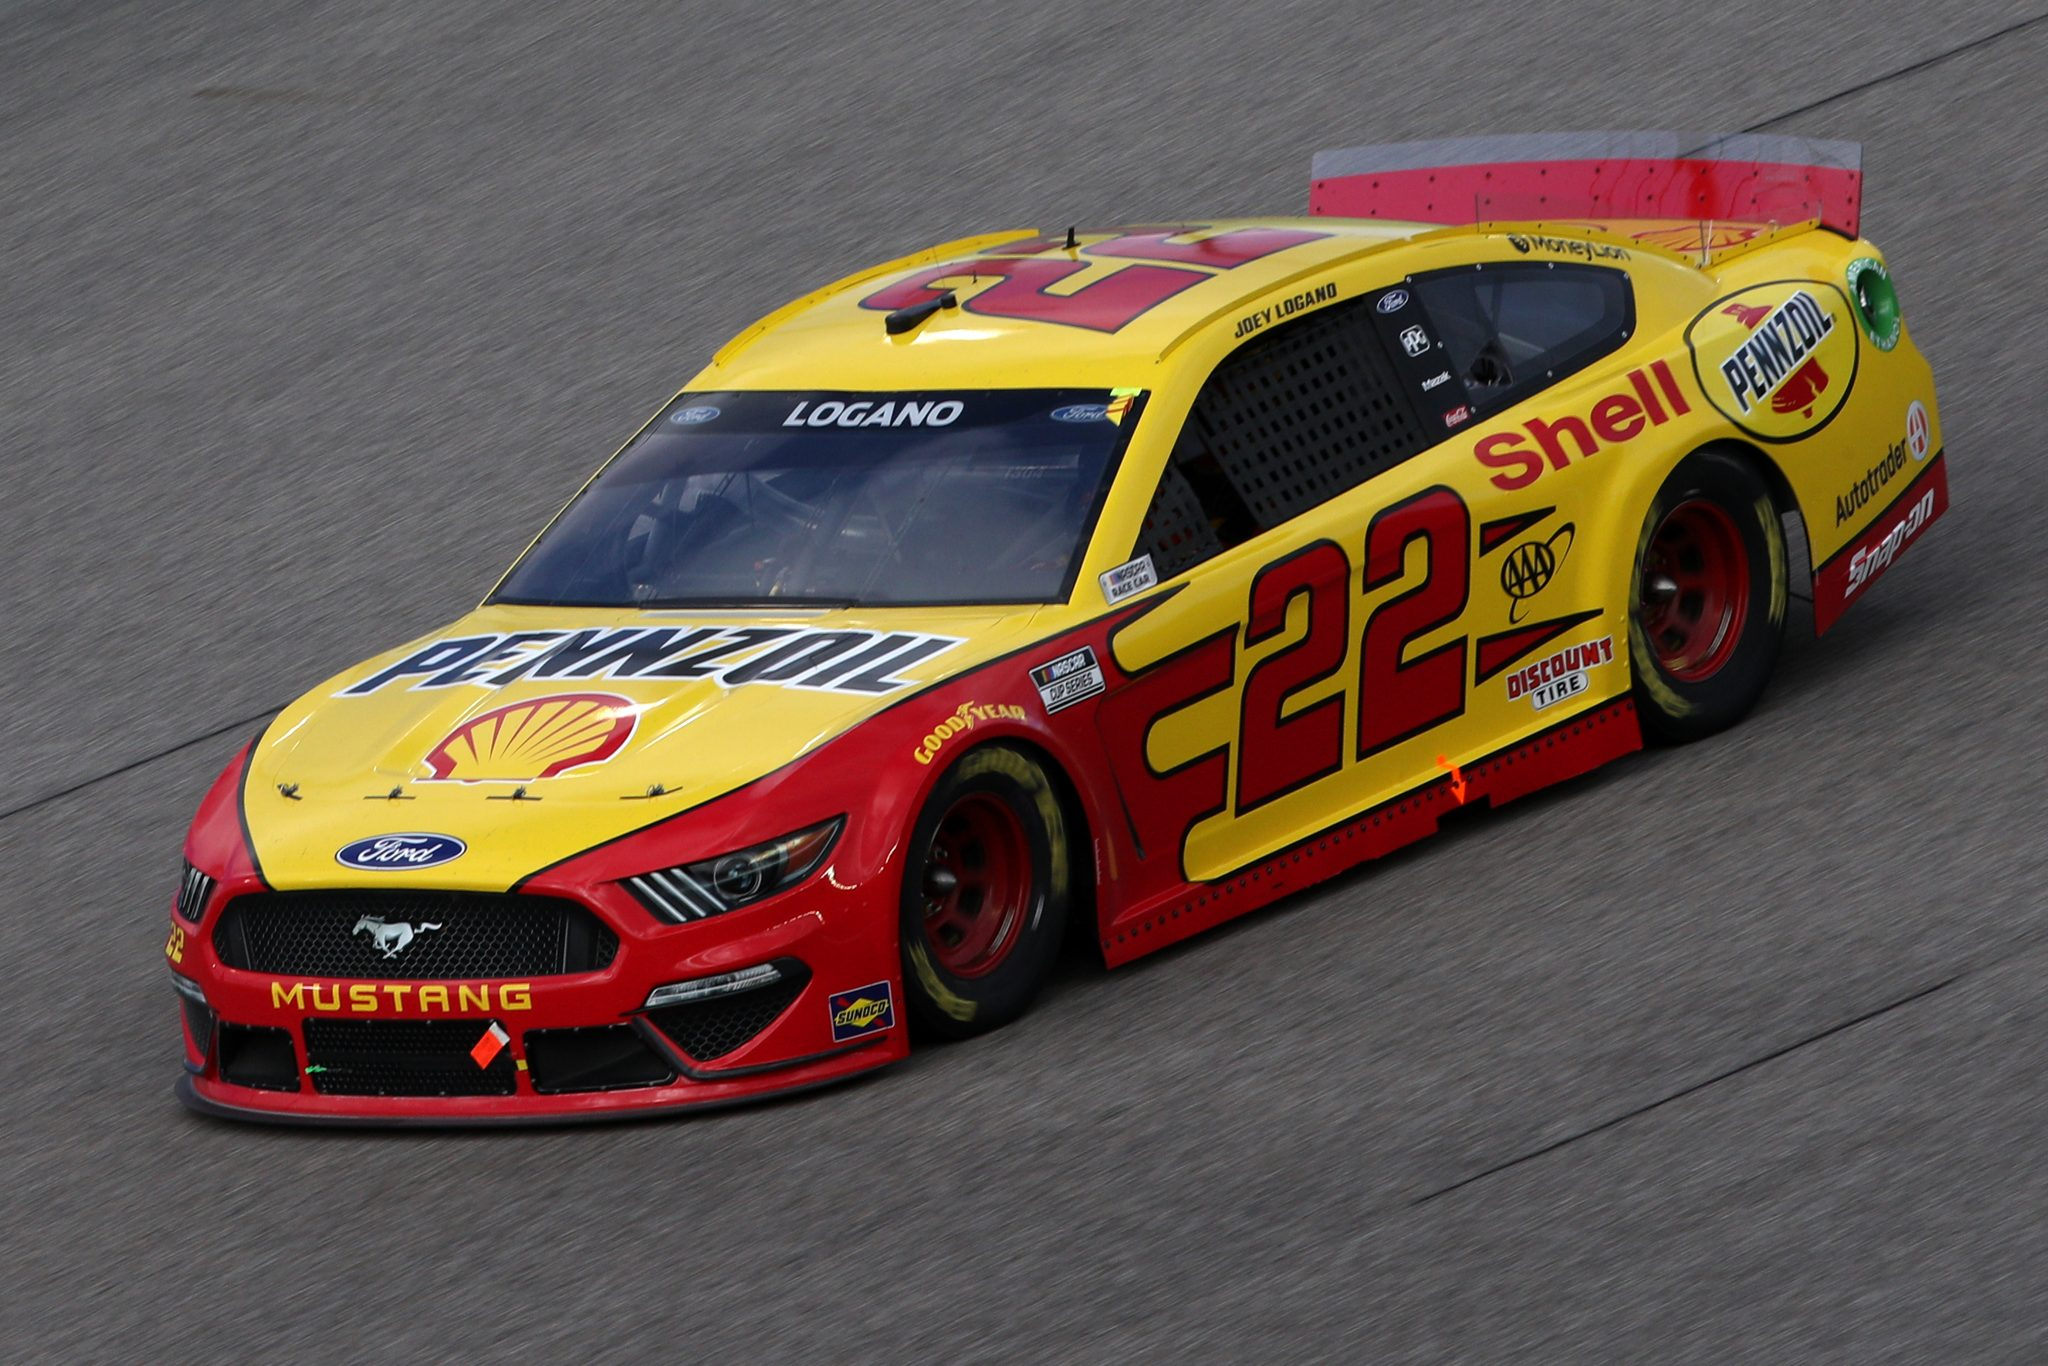 HOMESTEAD, FLORIDA - FEBRUARY 28: Joey Logano, driver of the #22 Shell Pennzoil Ford, drives during the NASCAR Cup Series Dixie Vodka 400 at Homestead-Miami Speedway on February 28, 2021 in Homestead, Florida. (Photo by Sean Gardner/Getty Images) | Getty Images